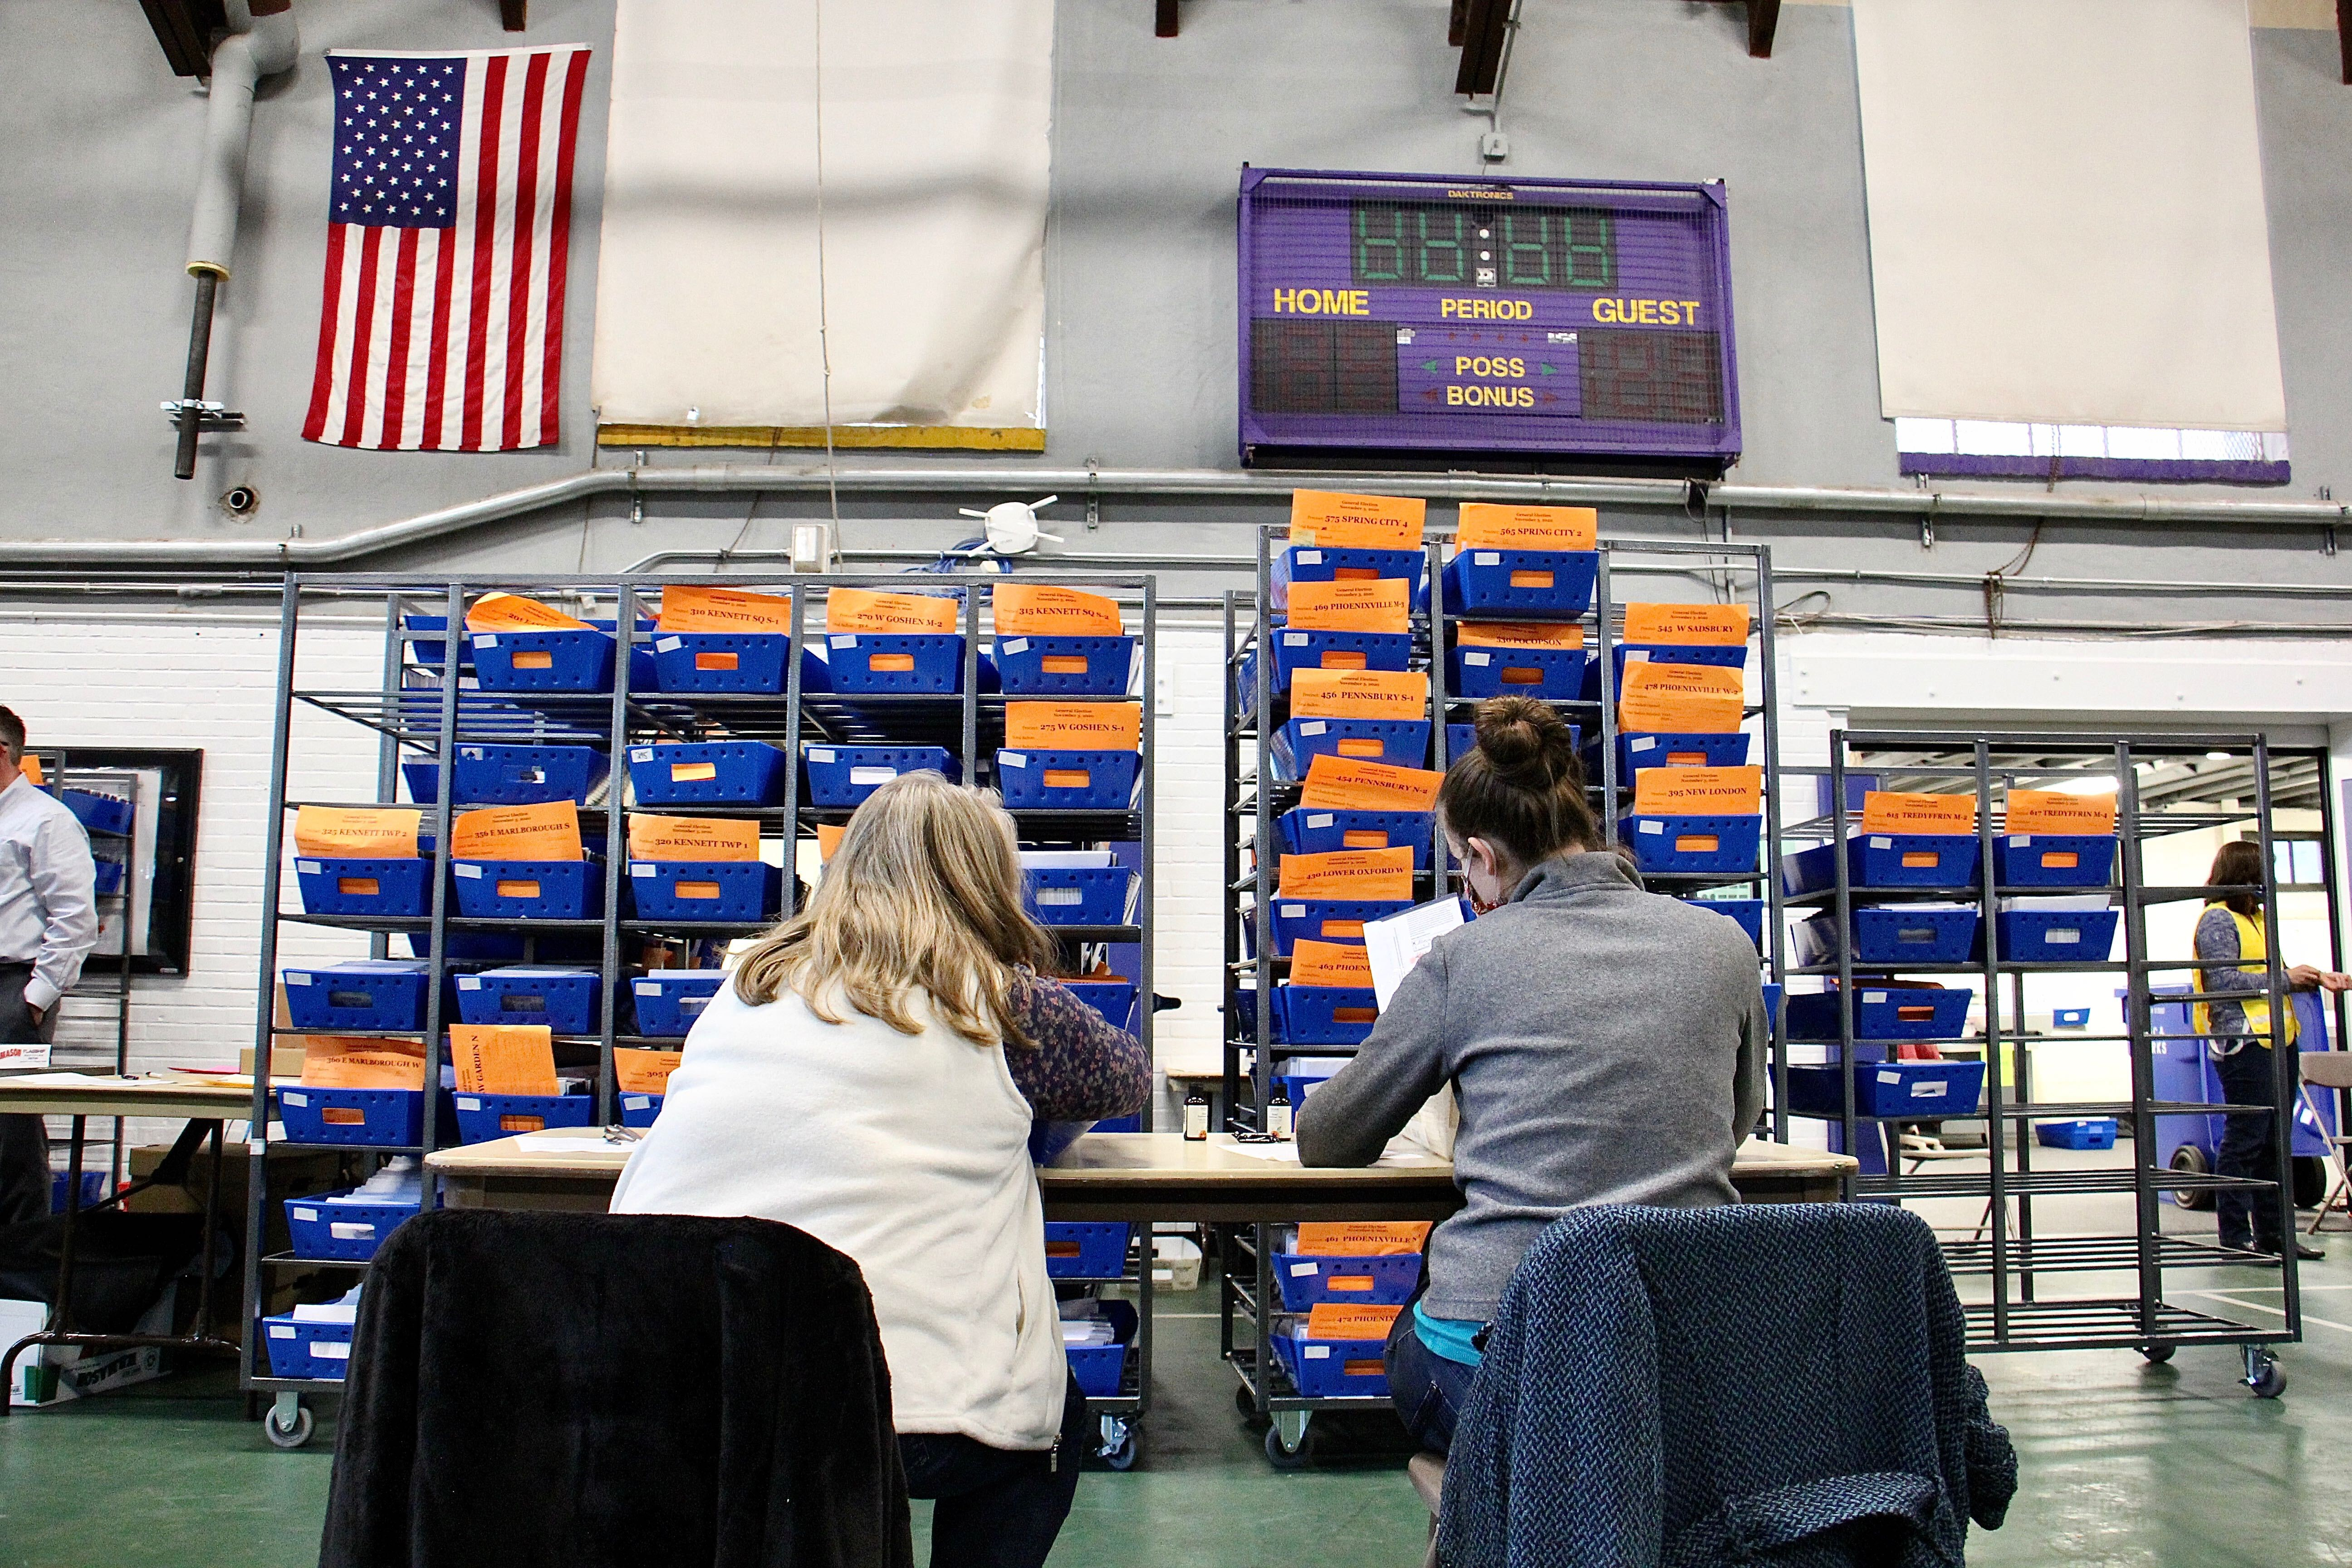 Chester Country election workers check ballots one last time before sending them to be scanned and counted in the West Chester University gym.